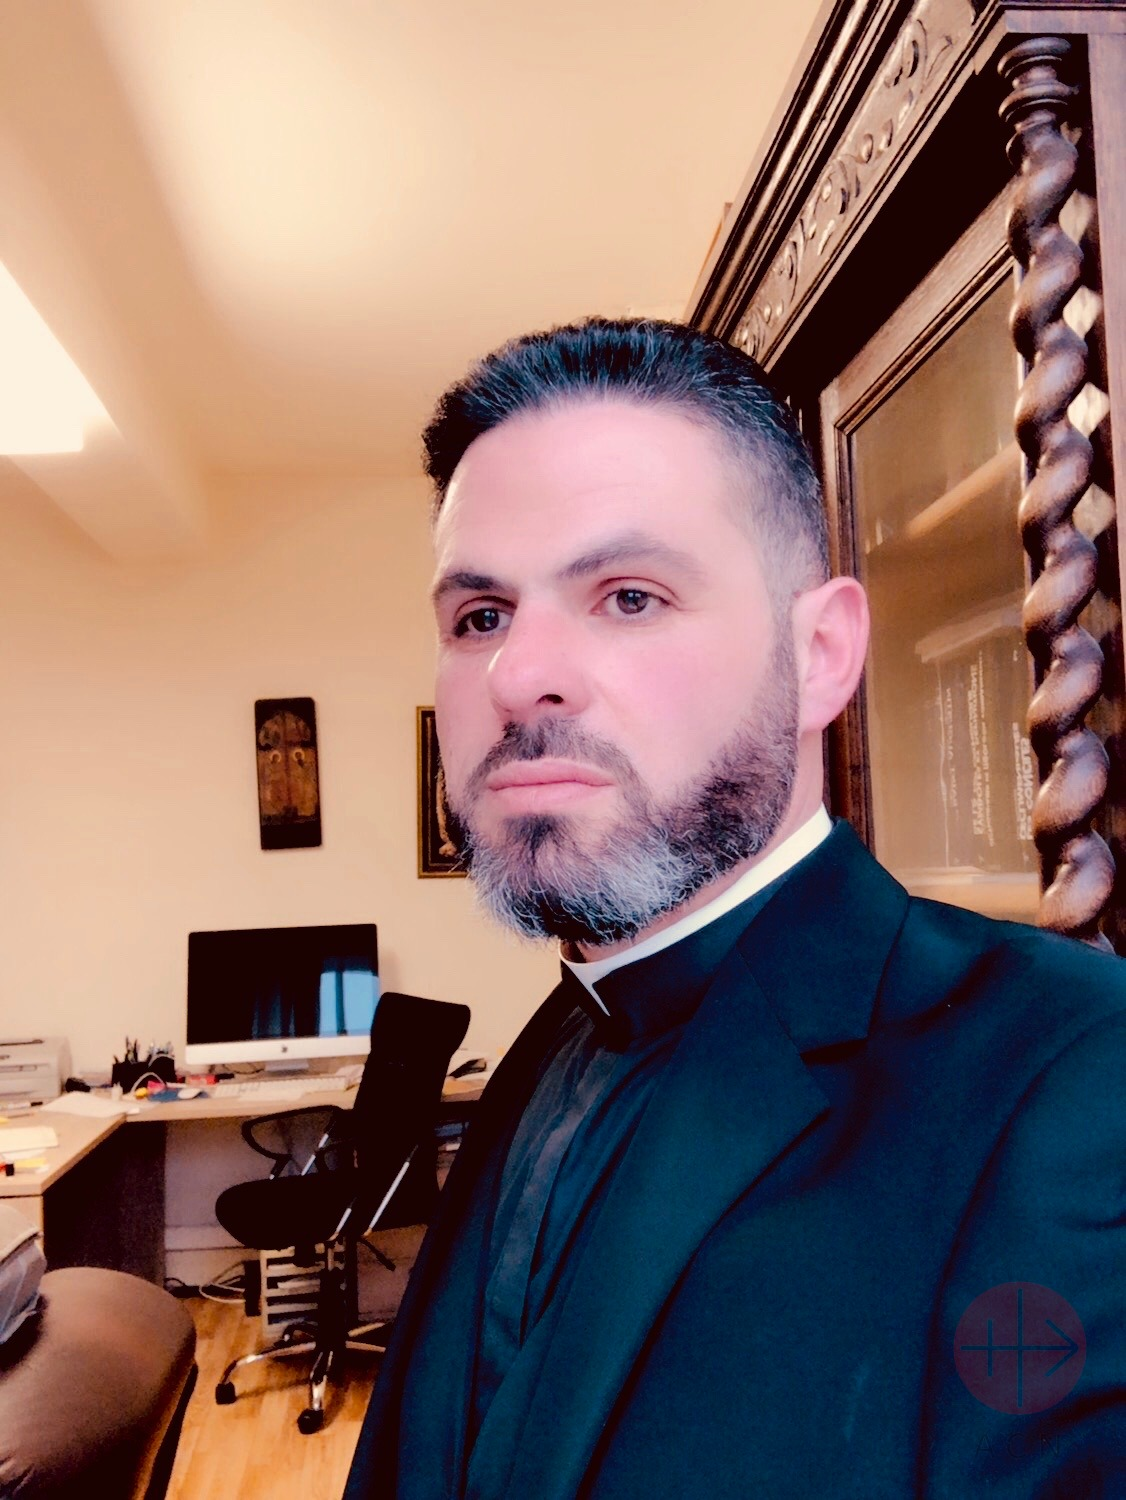 Líbano padre Charbel Eid Rizkallah of the mission of the Lebanese Maronite Order in Al-Hassakeh Syria, 2020.